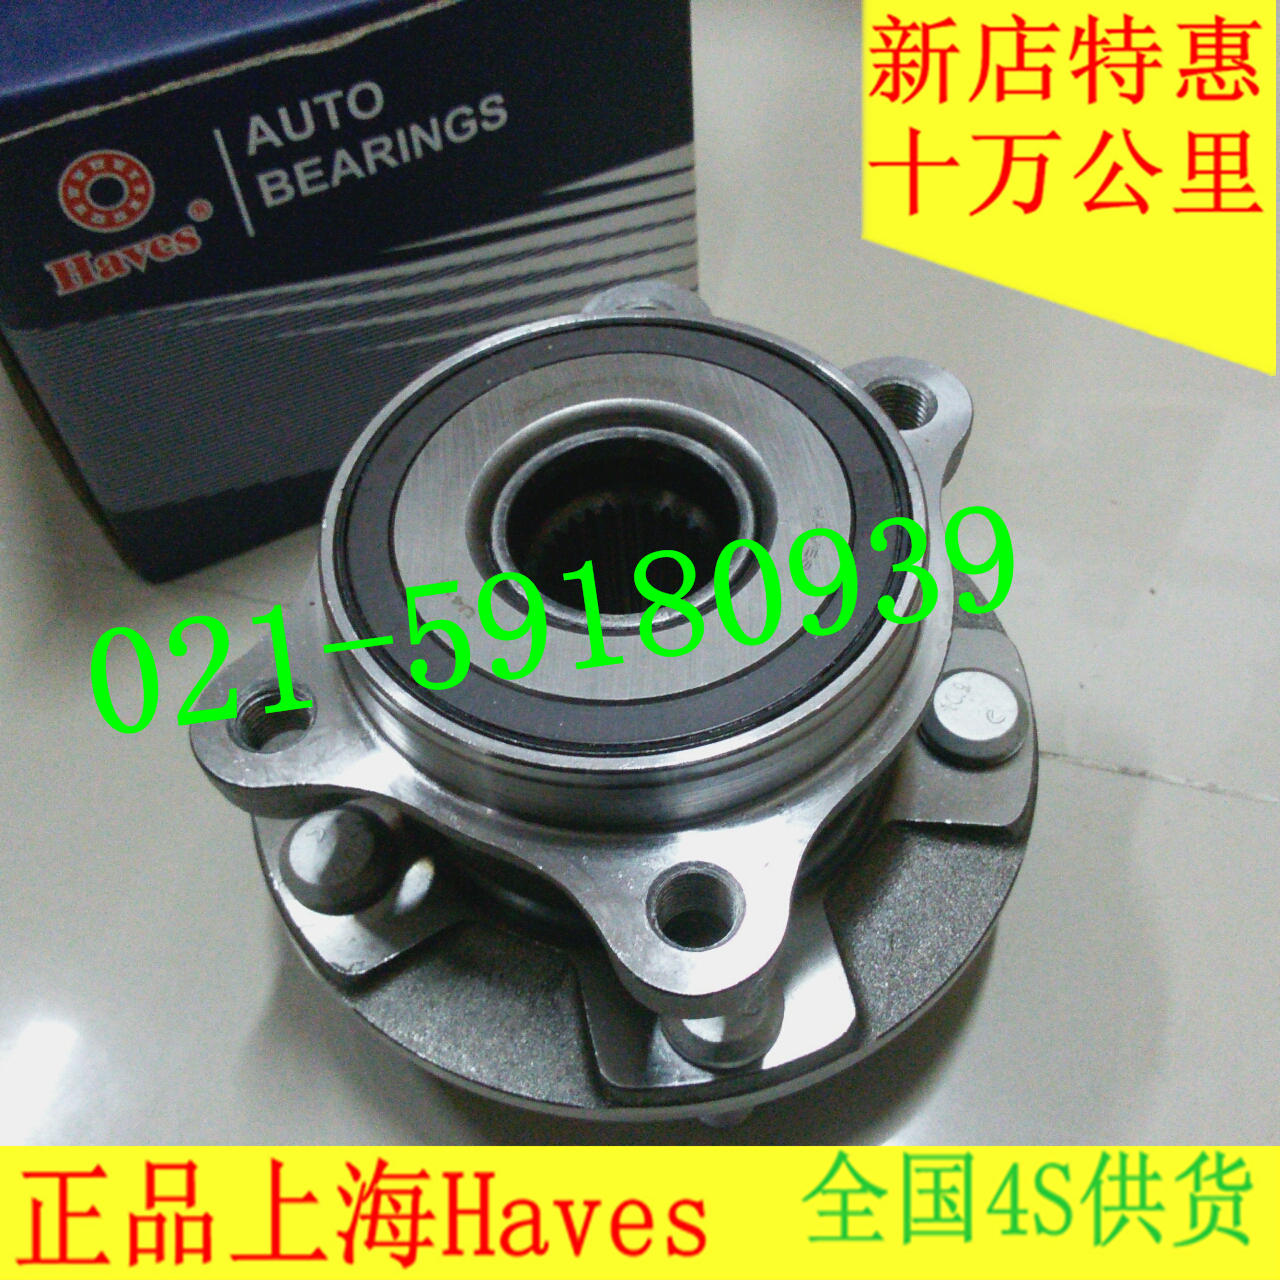 Authentic shanghai haves toyota prius瑞卡罗拉普reiz/3/prius rear wheel bearing front wheel bearings